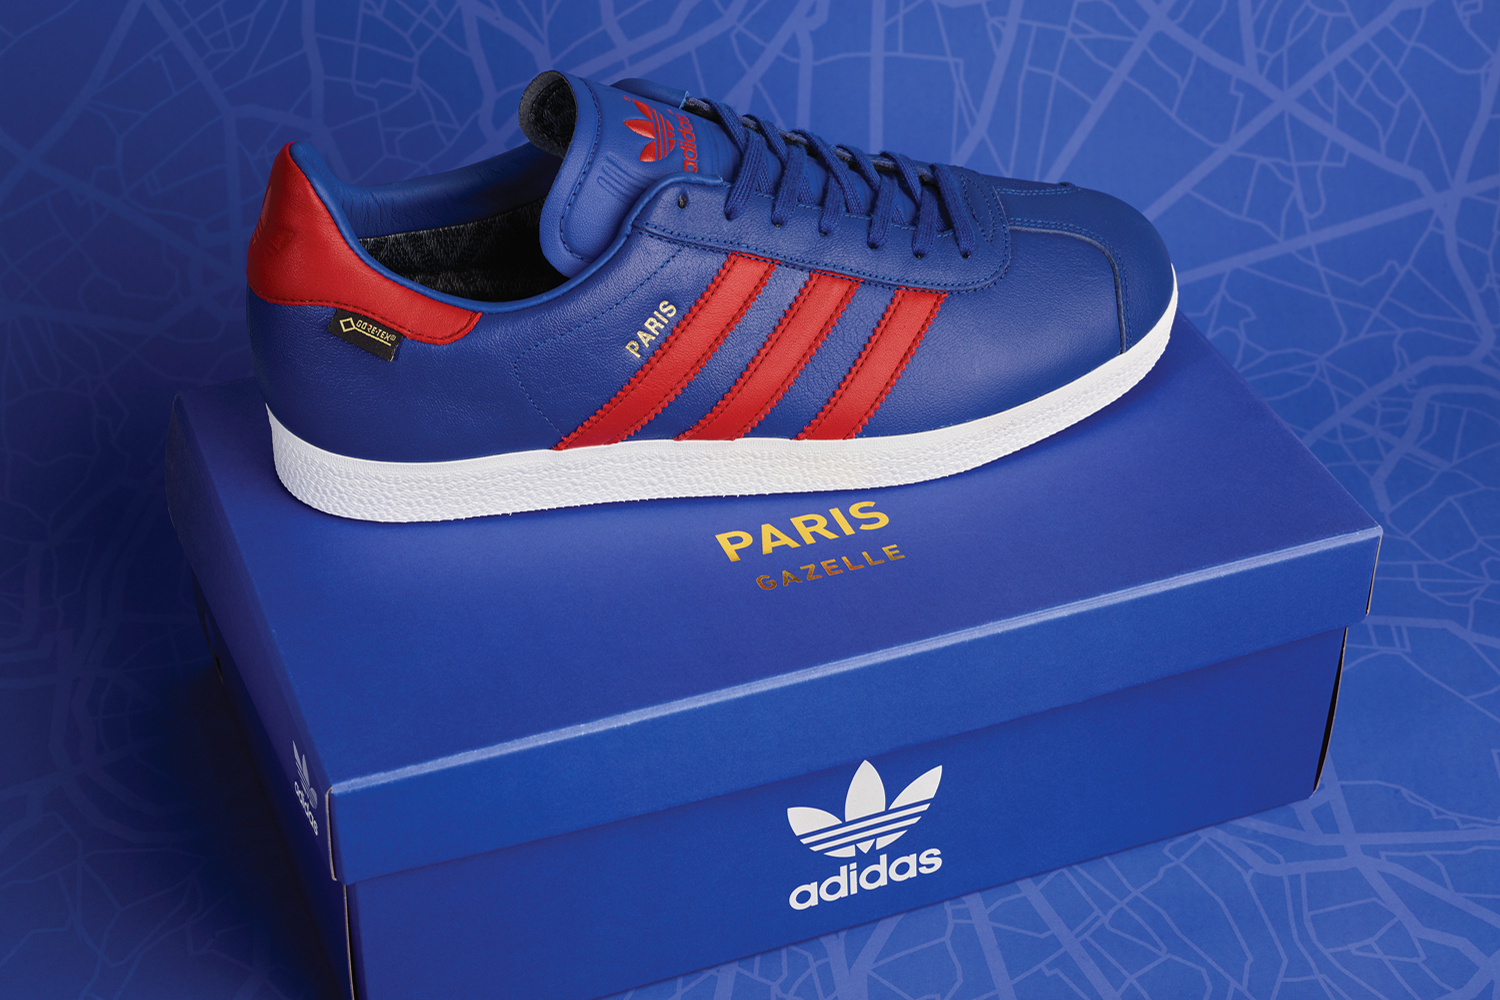 size-adidas-originals-gazelle-gtx-paris-5